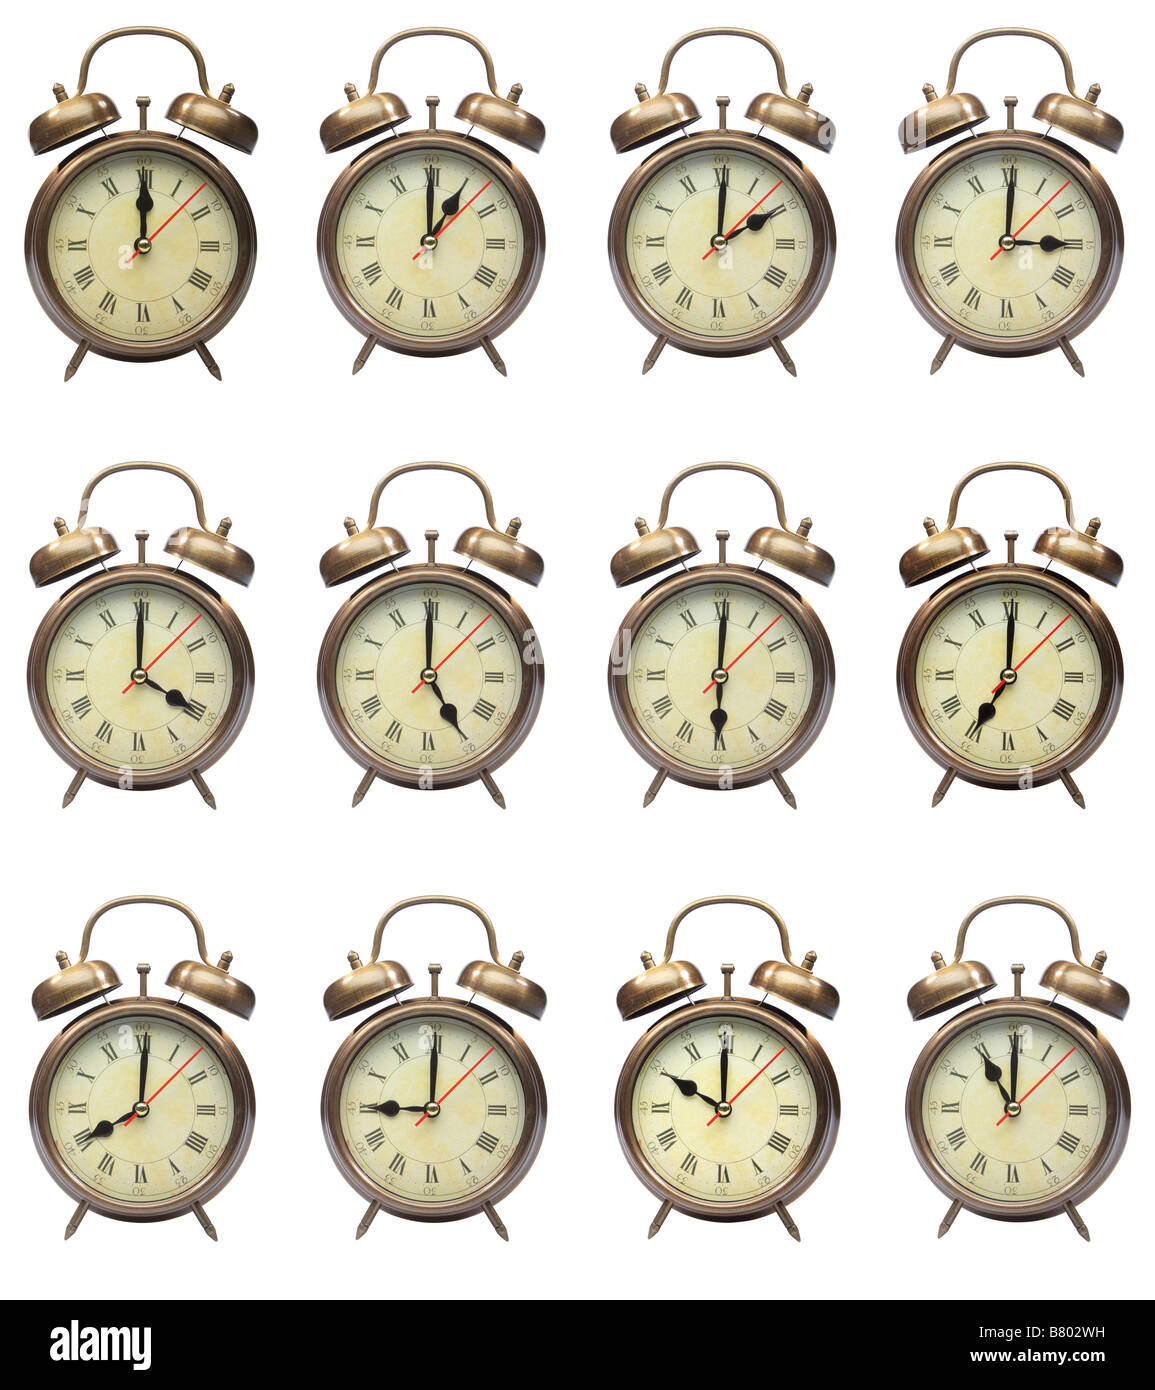 vintage alarm clocks isolated on white showing 24 hours of the day - Stock Image